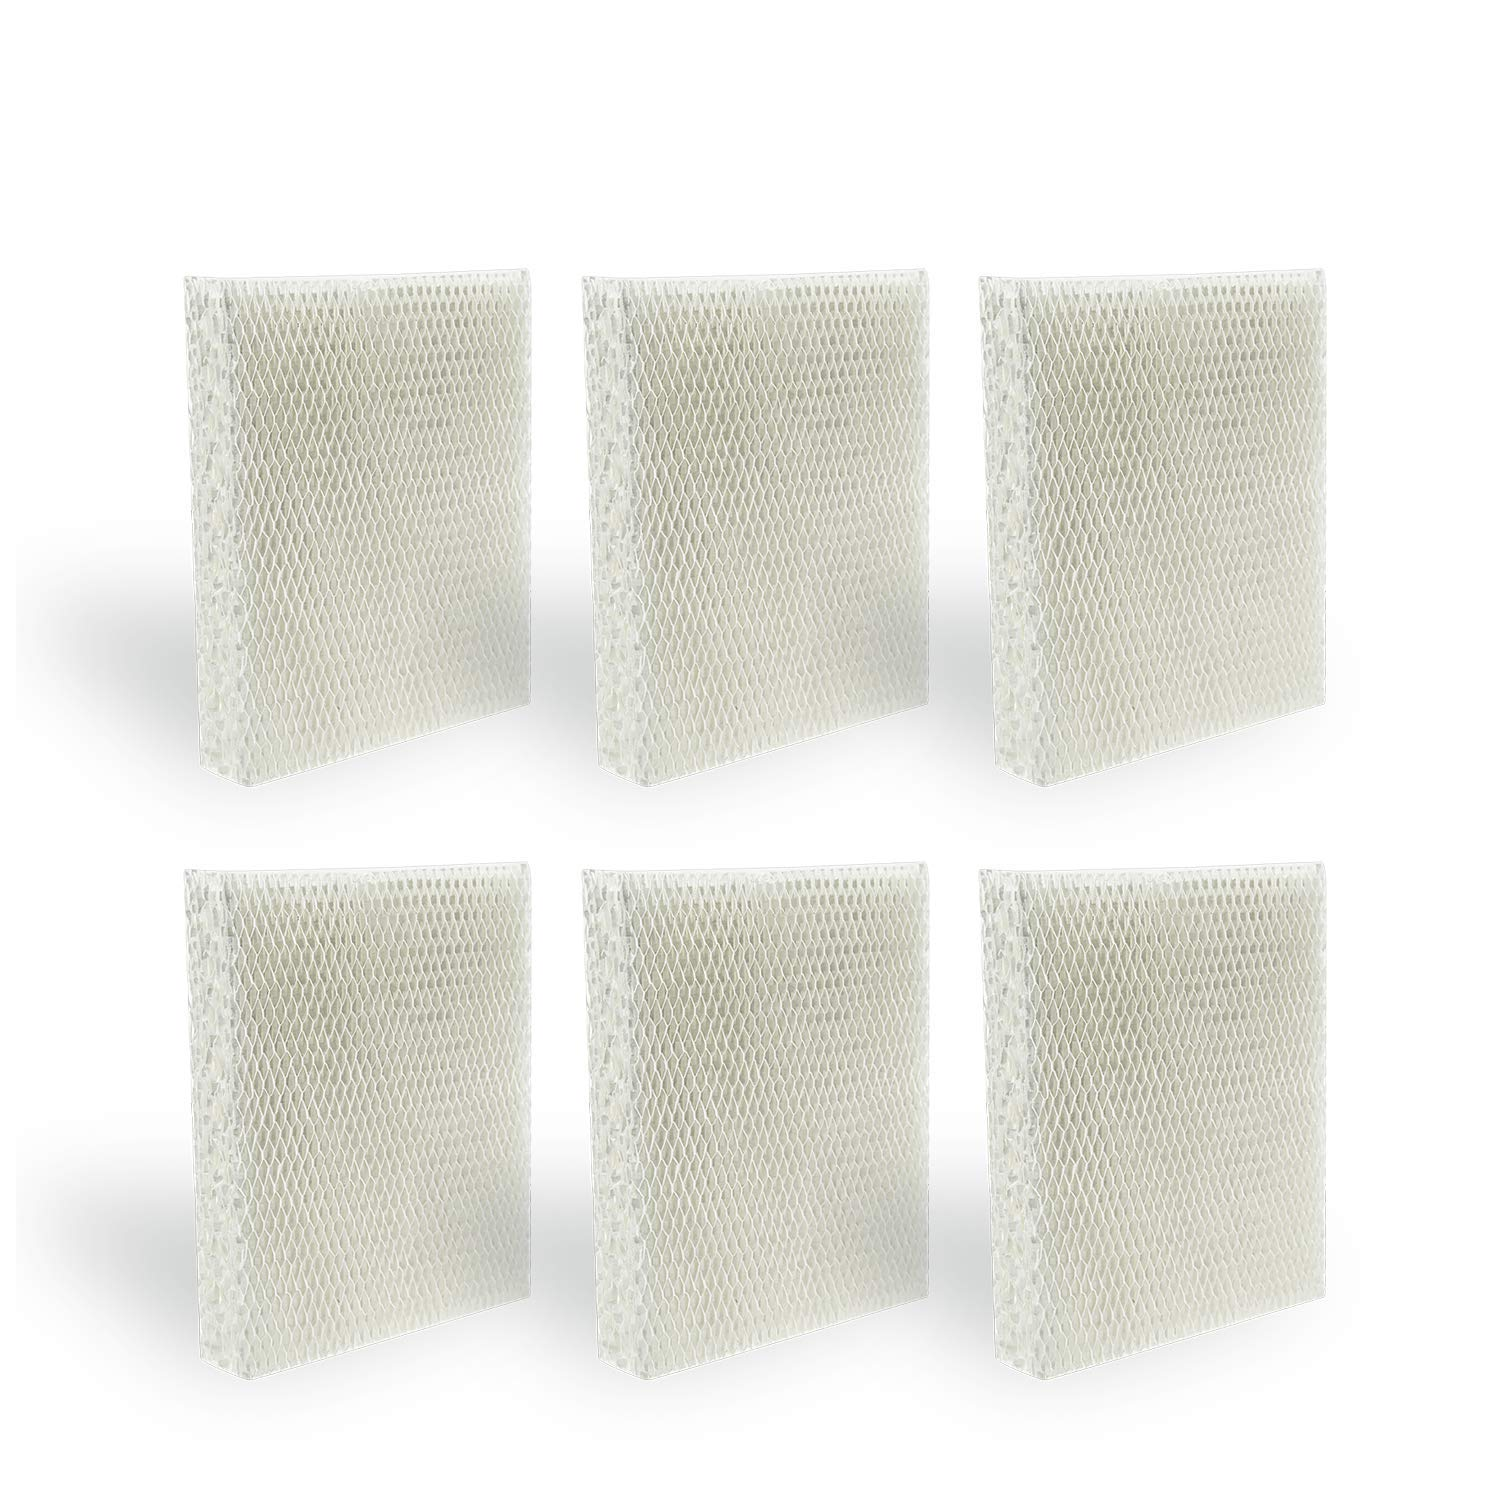 BIHARNT 6 Pack HEV615,HEV620 Humidifier Wicking Filters Compatible with Honeywell HFT600,HFT600T, HFT600PDQ, Filter T by BIHARNT